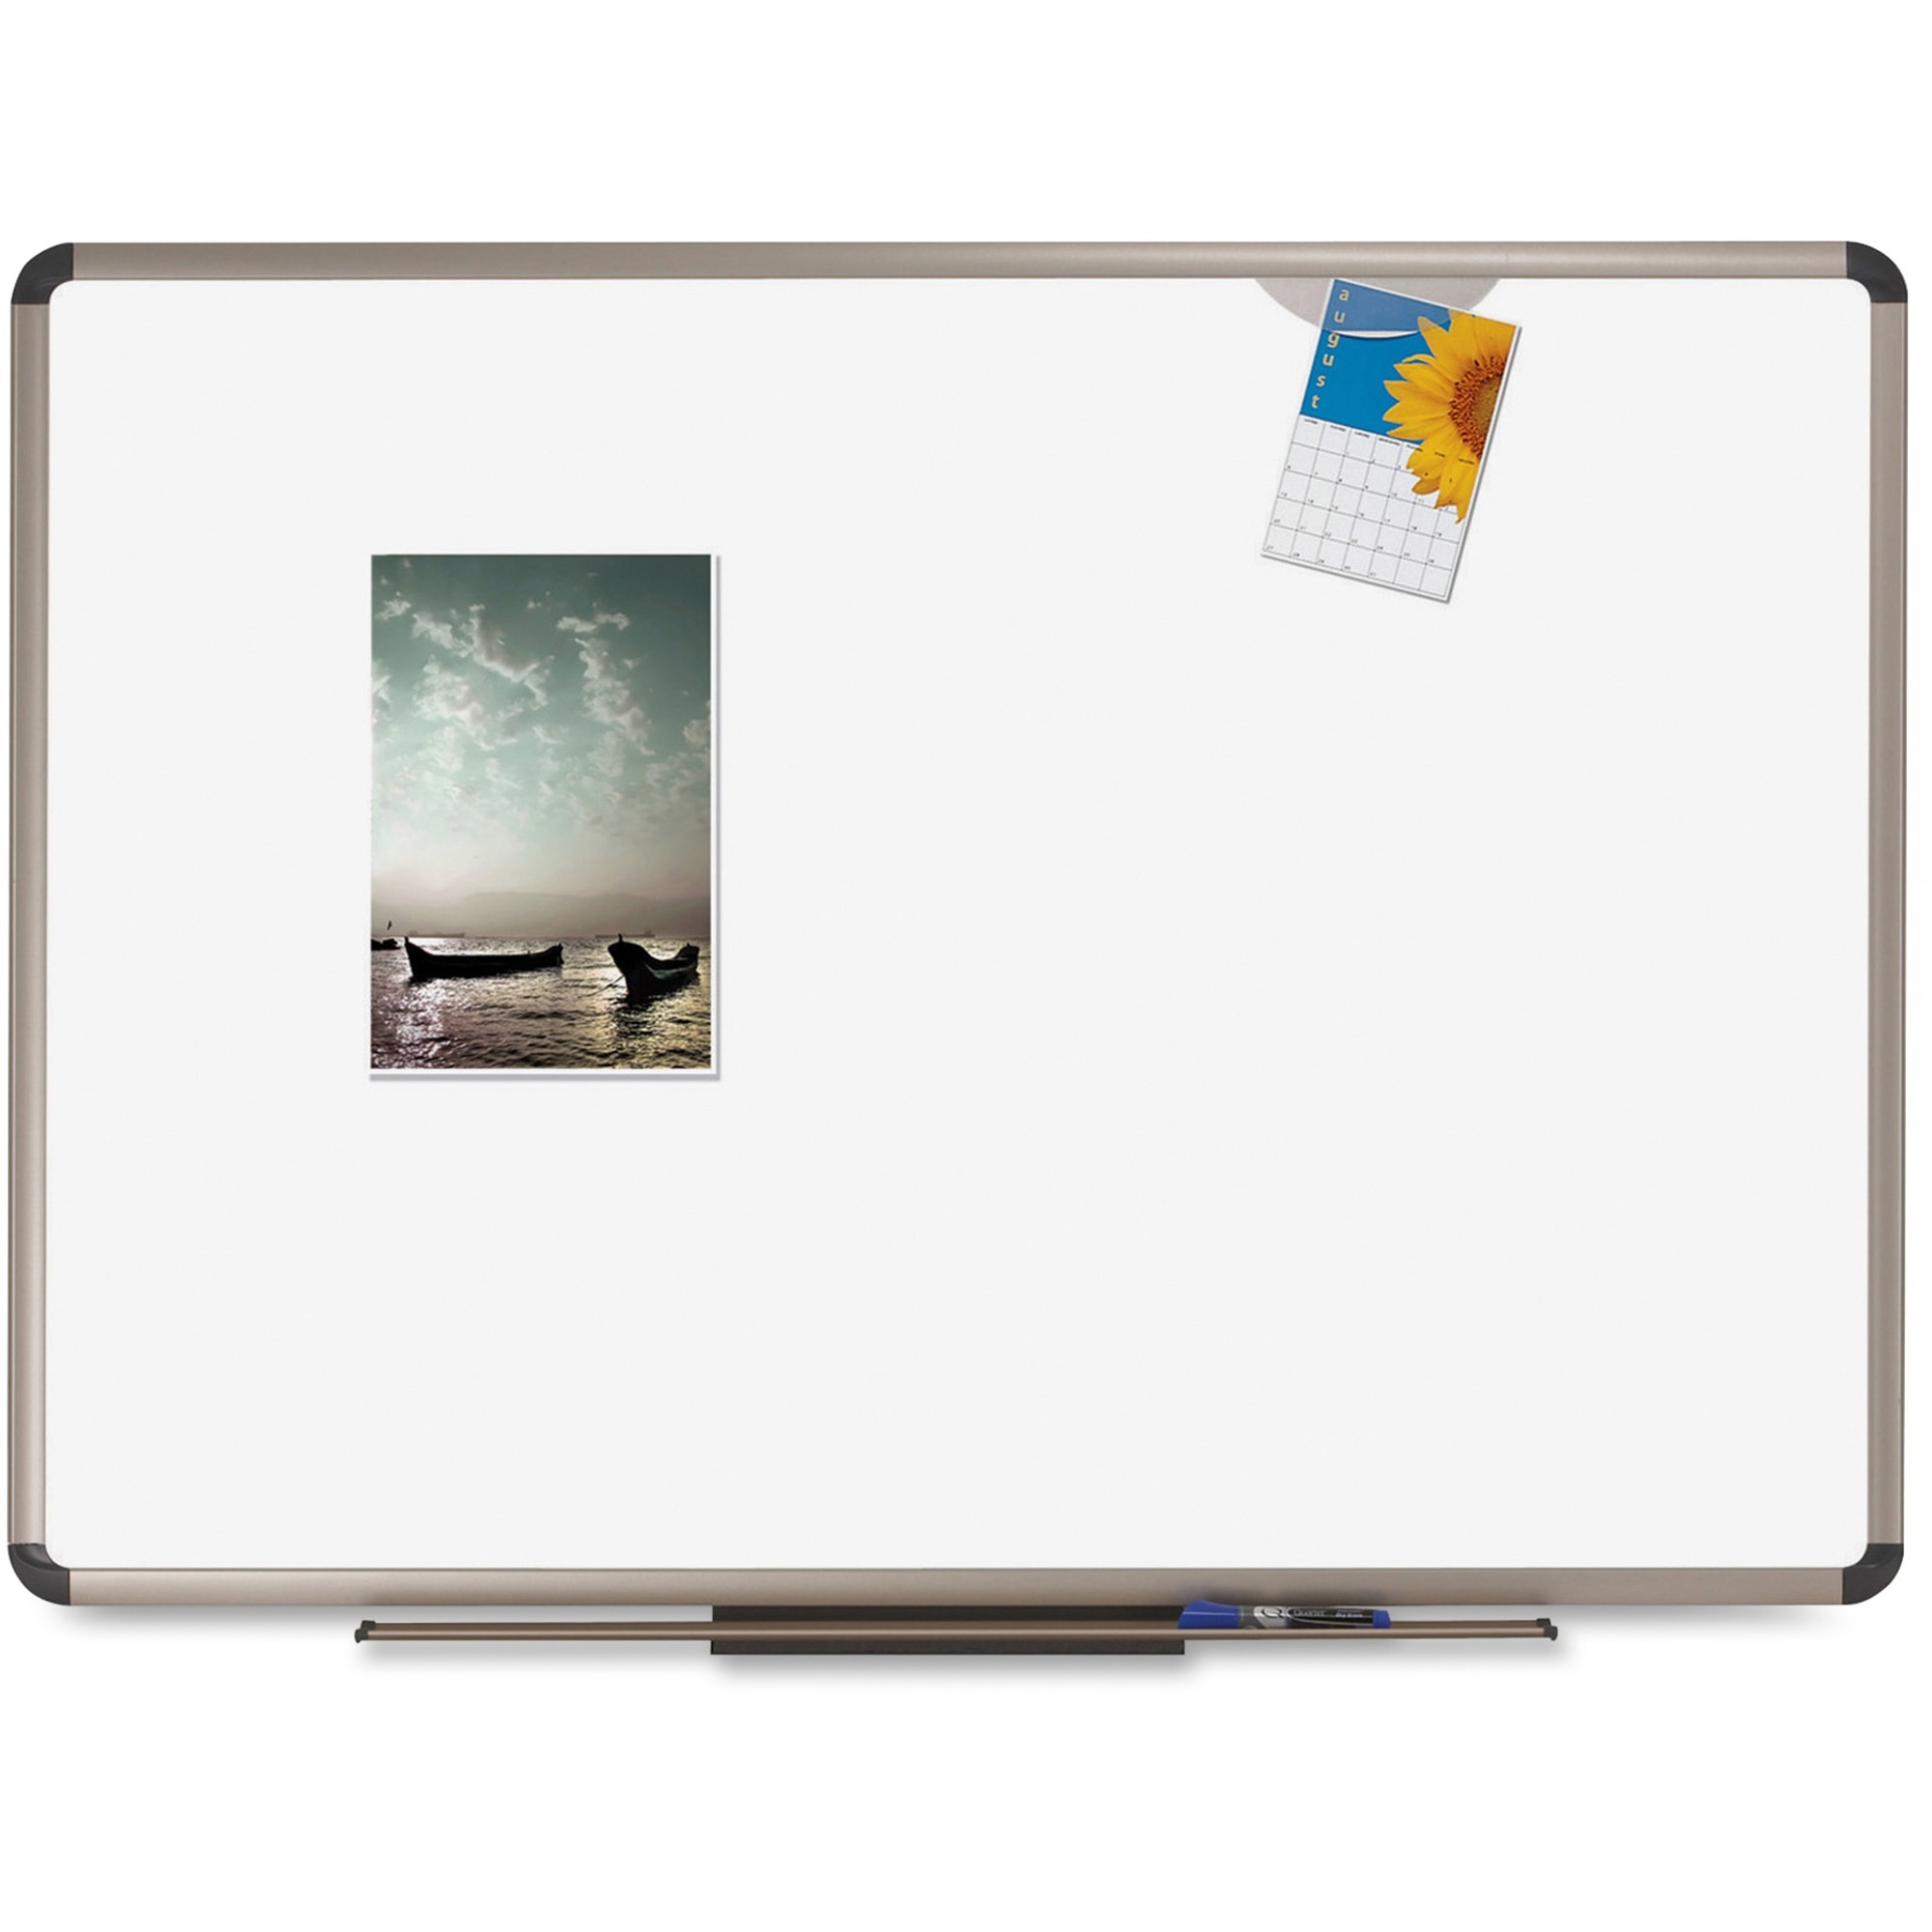 Acco Brands Corporation Quartet® Prestige Plus® Duramax® Porcelain Whiteboard - 36 (3 Ft) Width X 24 (2 Ft) Height - White Porcelain Surface - Titanium Aluminum Frame - Rectangle - Horizontal - Wall Mount - 1 / Each - Taa Compliant